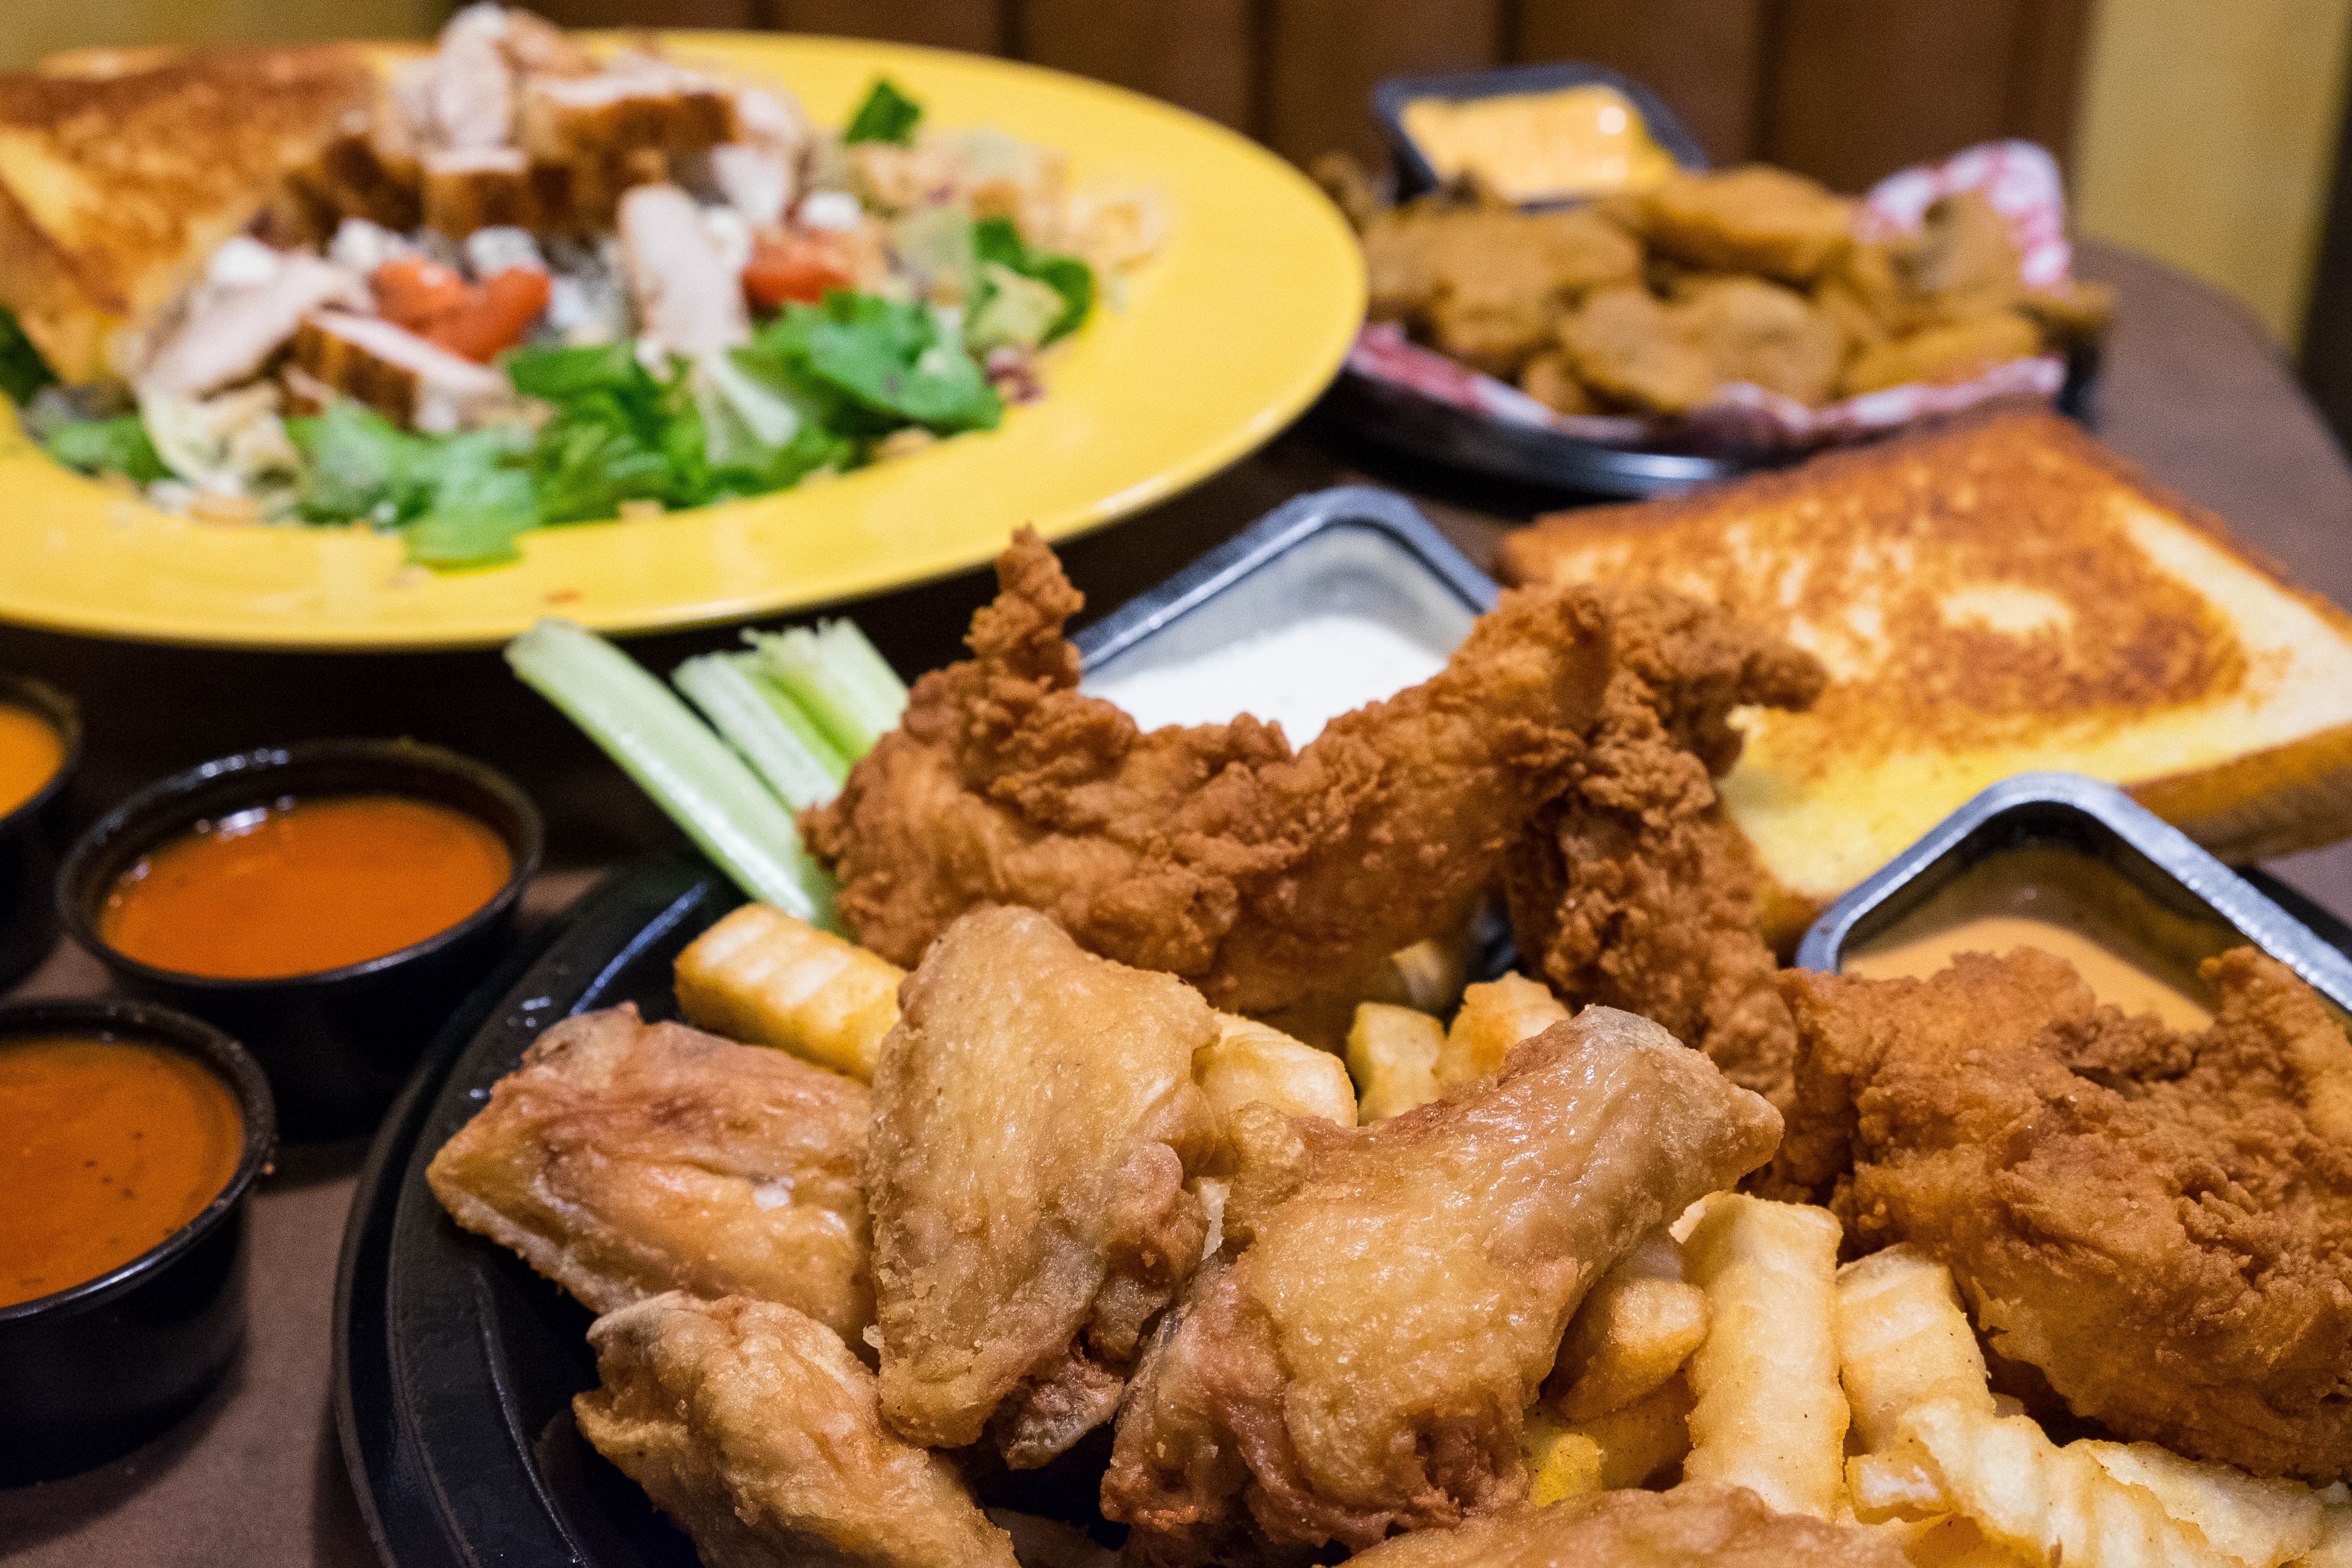 Food at Zaxby's